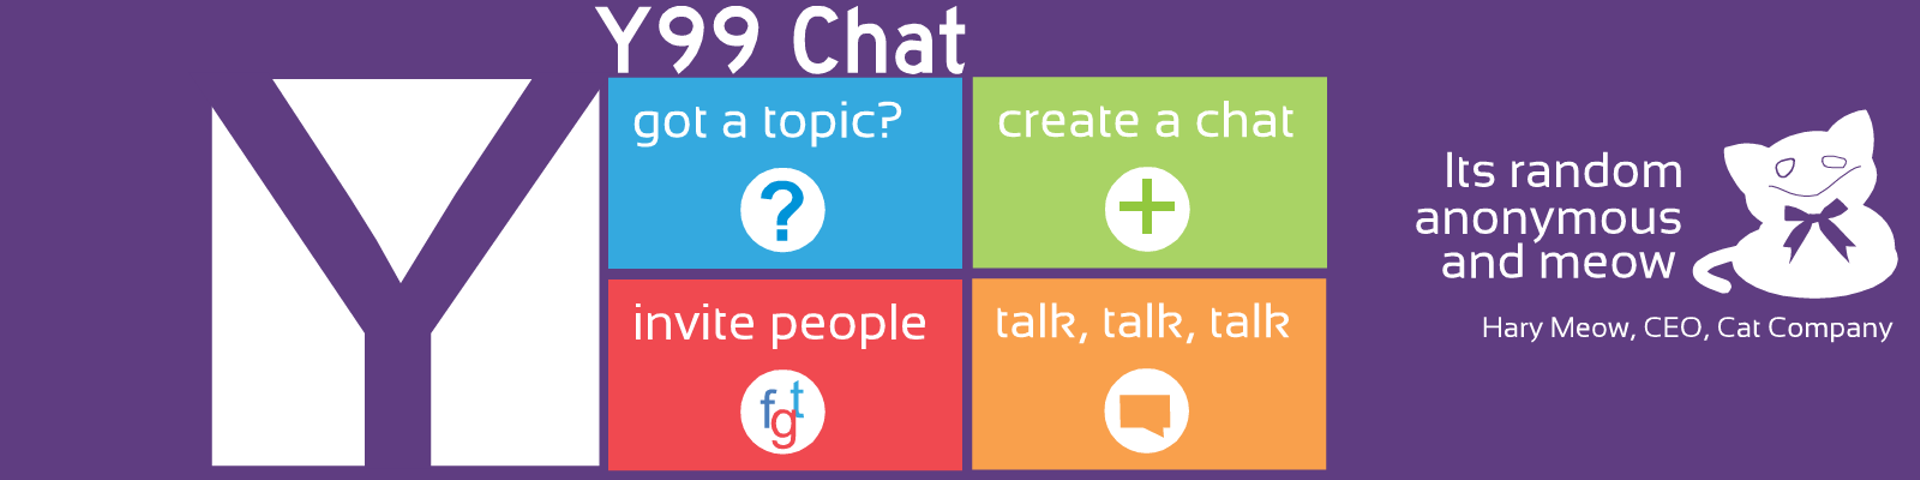 Create chat room at y99